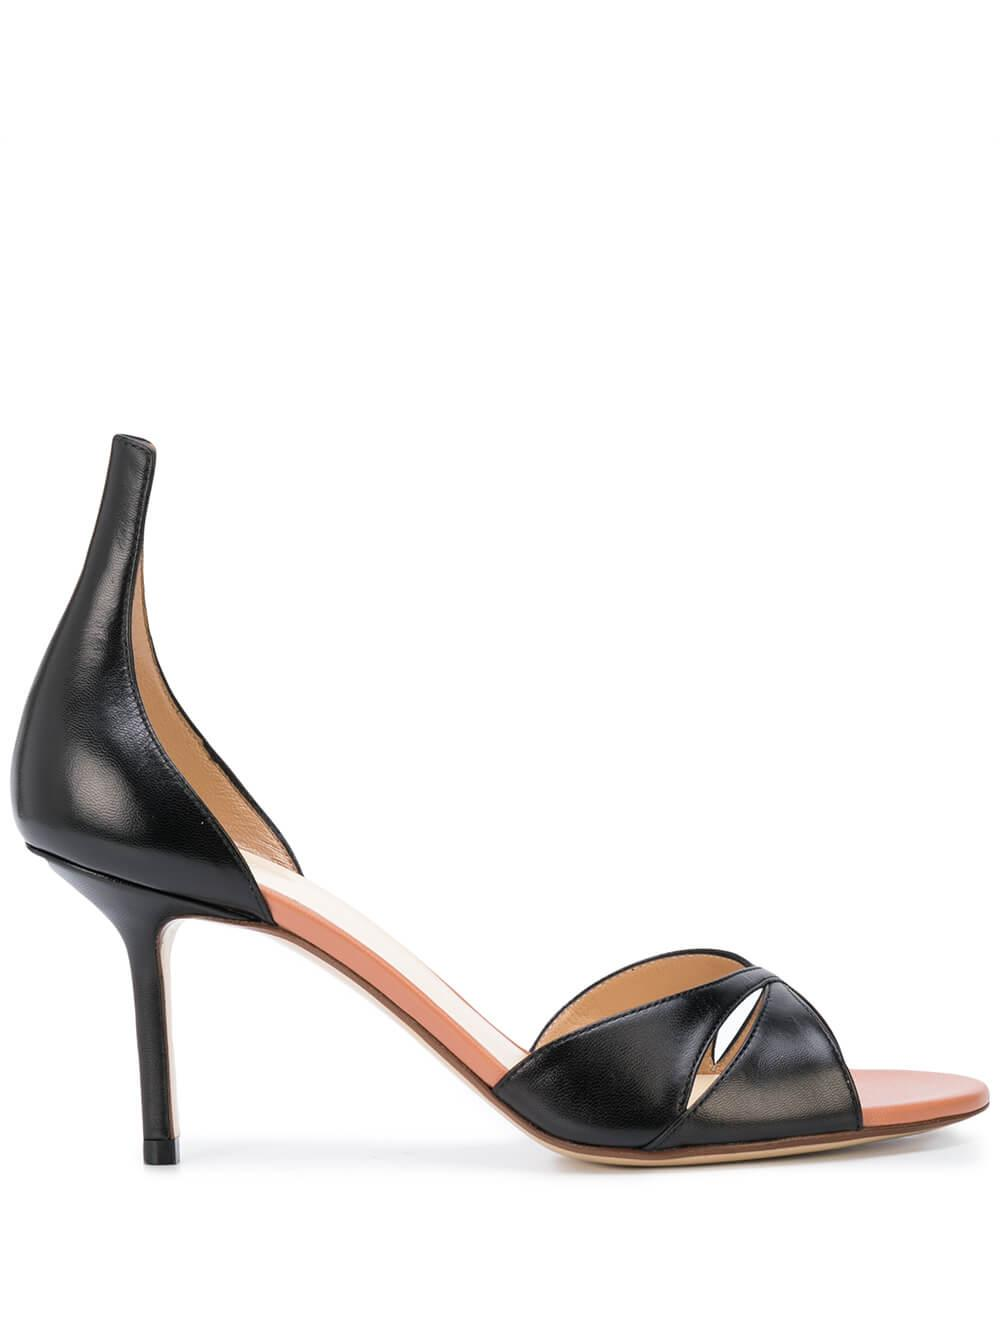 Leather 75mm Criss Cross High Heel Sandal Item # R1S589-200